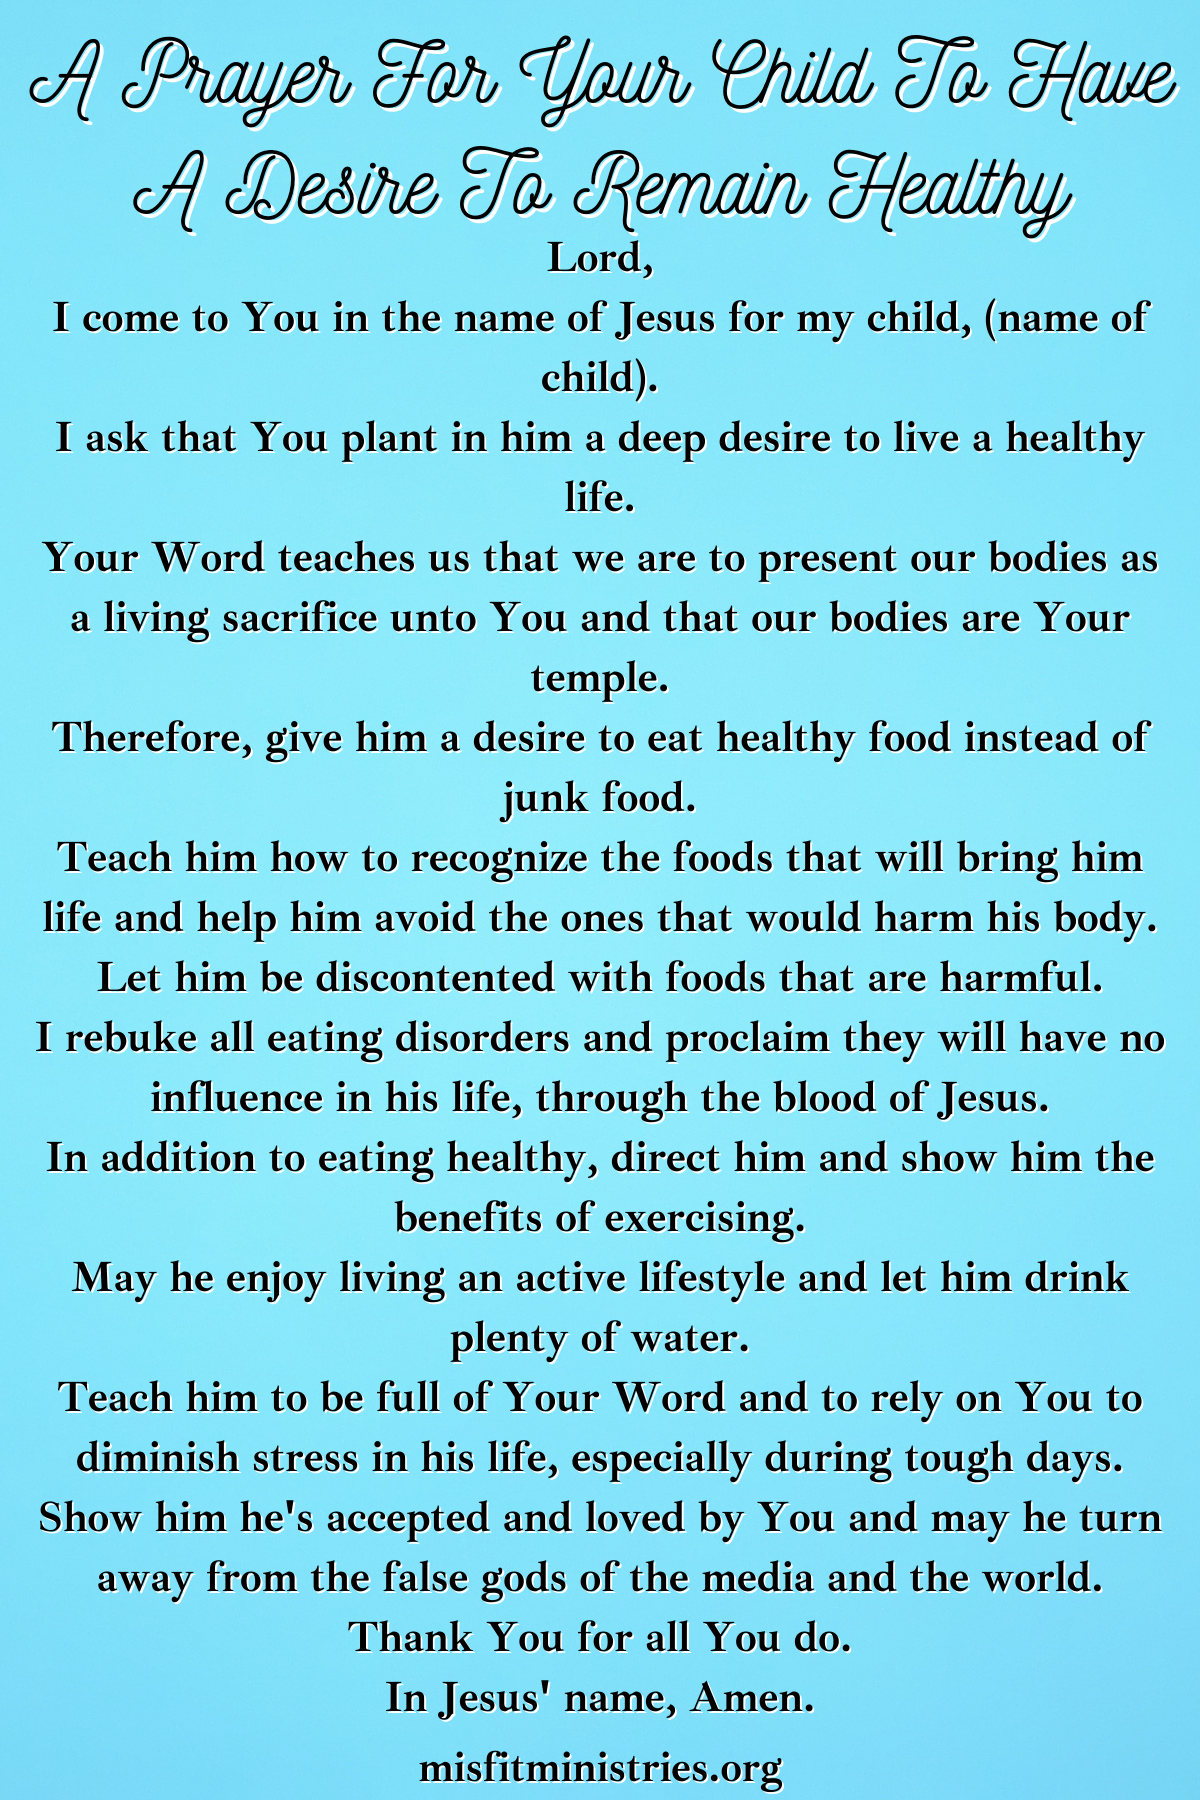 a prayer for your child to have a desire to remain healthy